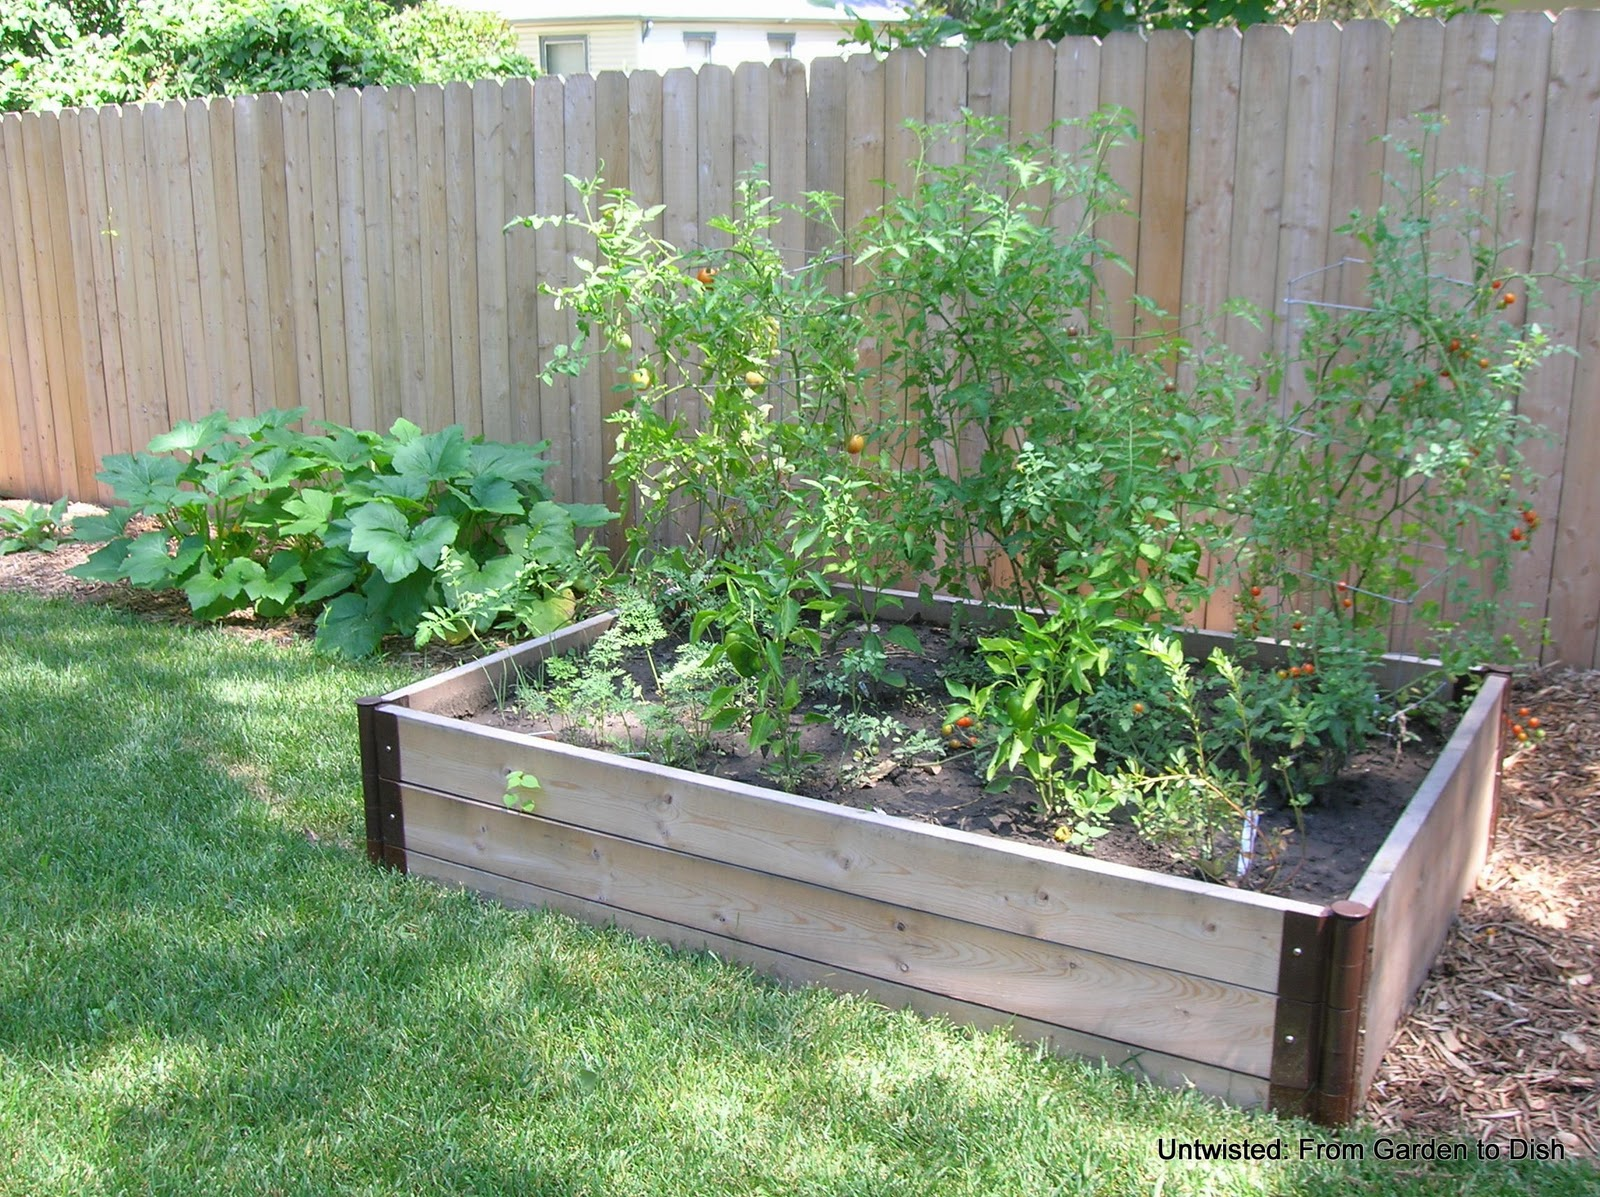 untwisted from garden to dish untwisted garden raised beds ForBest Material For Raised Garden Beds